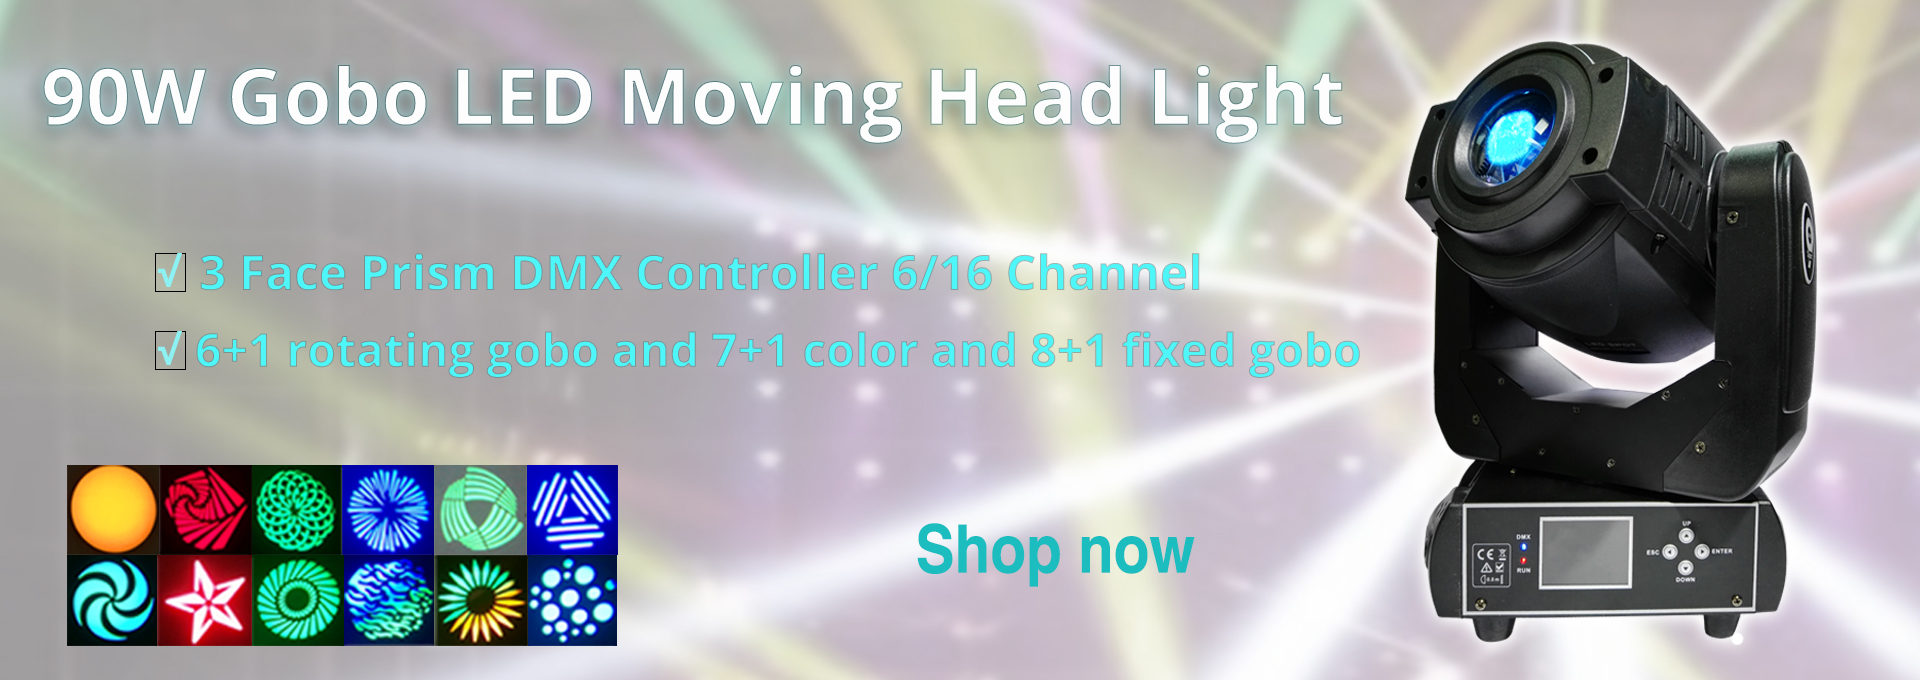 High Quality Songxu Stage Lighting Store   Small Orders Online Store, Hot Selling And  More On Aliexpress.com Gallery